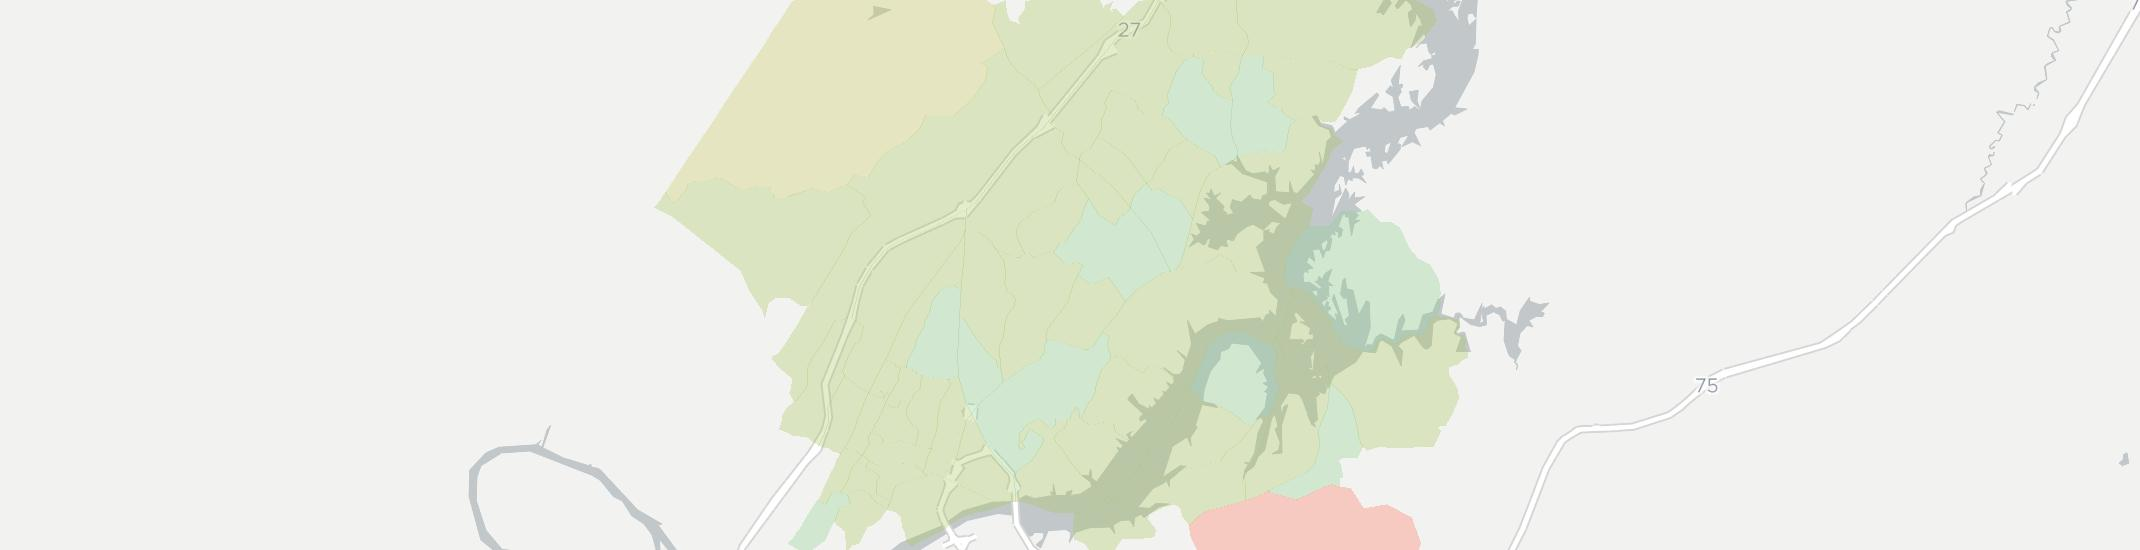 Hixson Internet Competition Map. Click for interactive map.